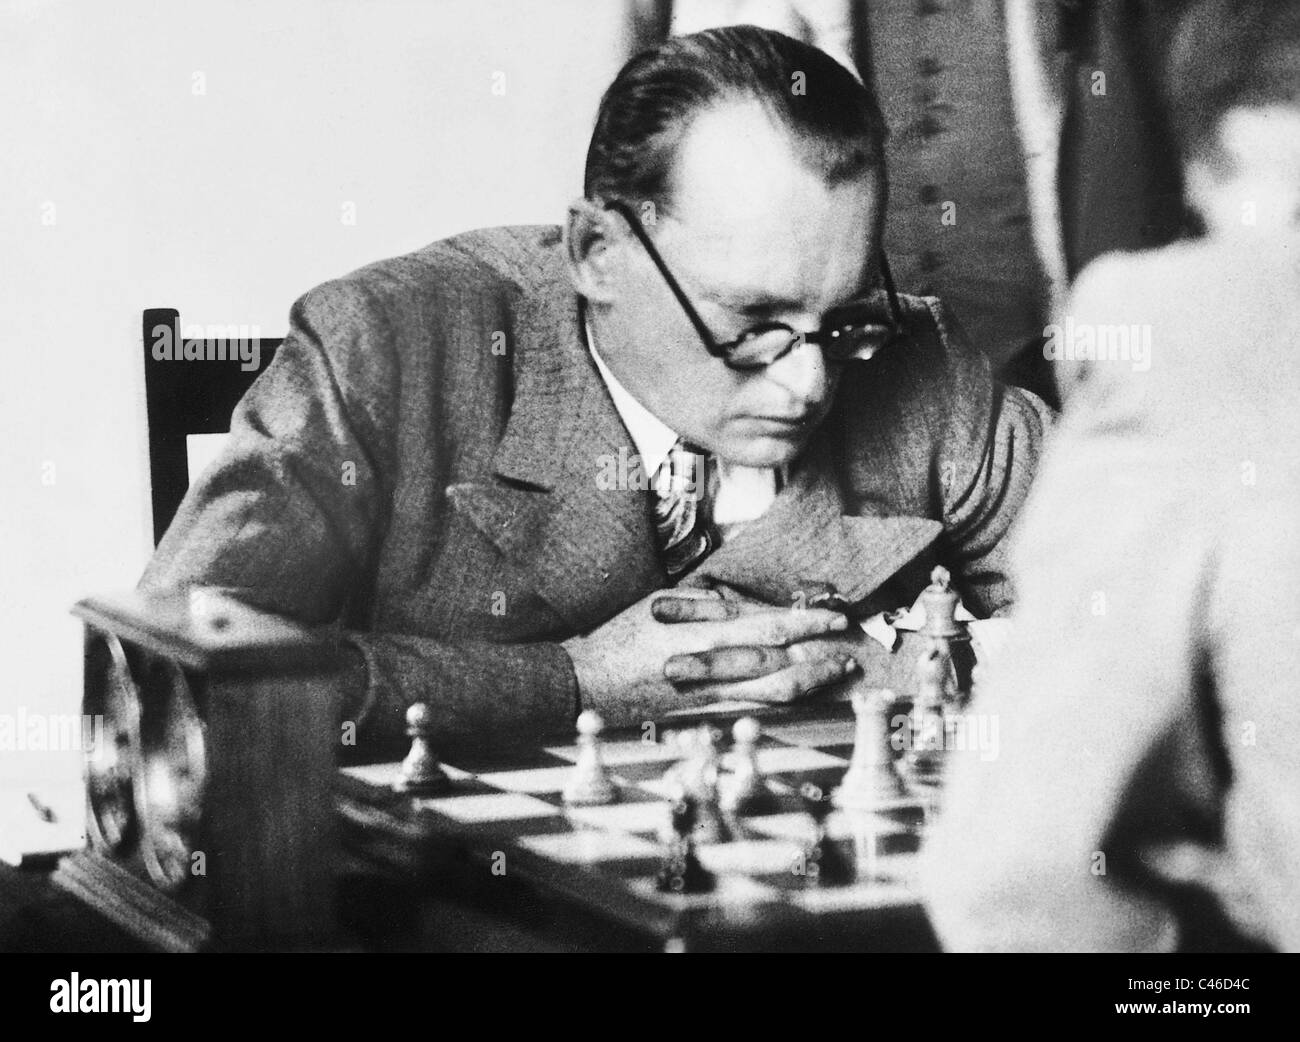 Alexander Alekhine playing chess, 1936 - Stock Image